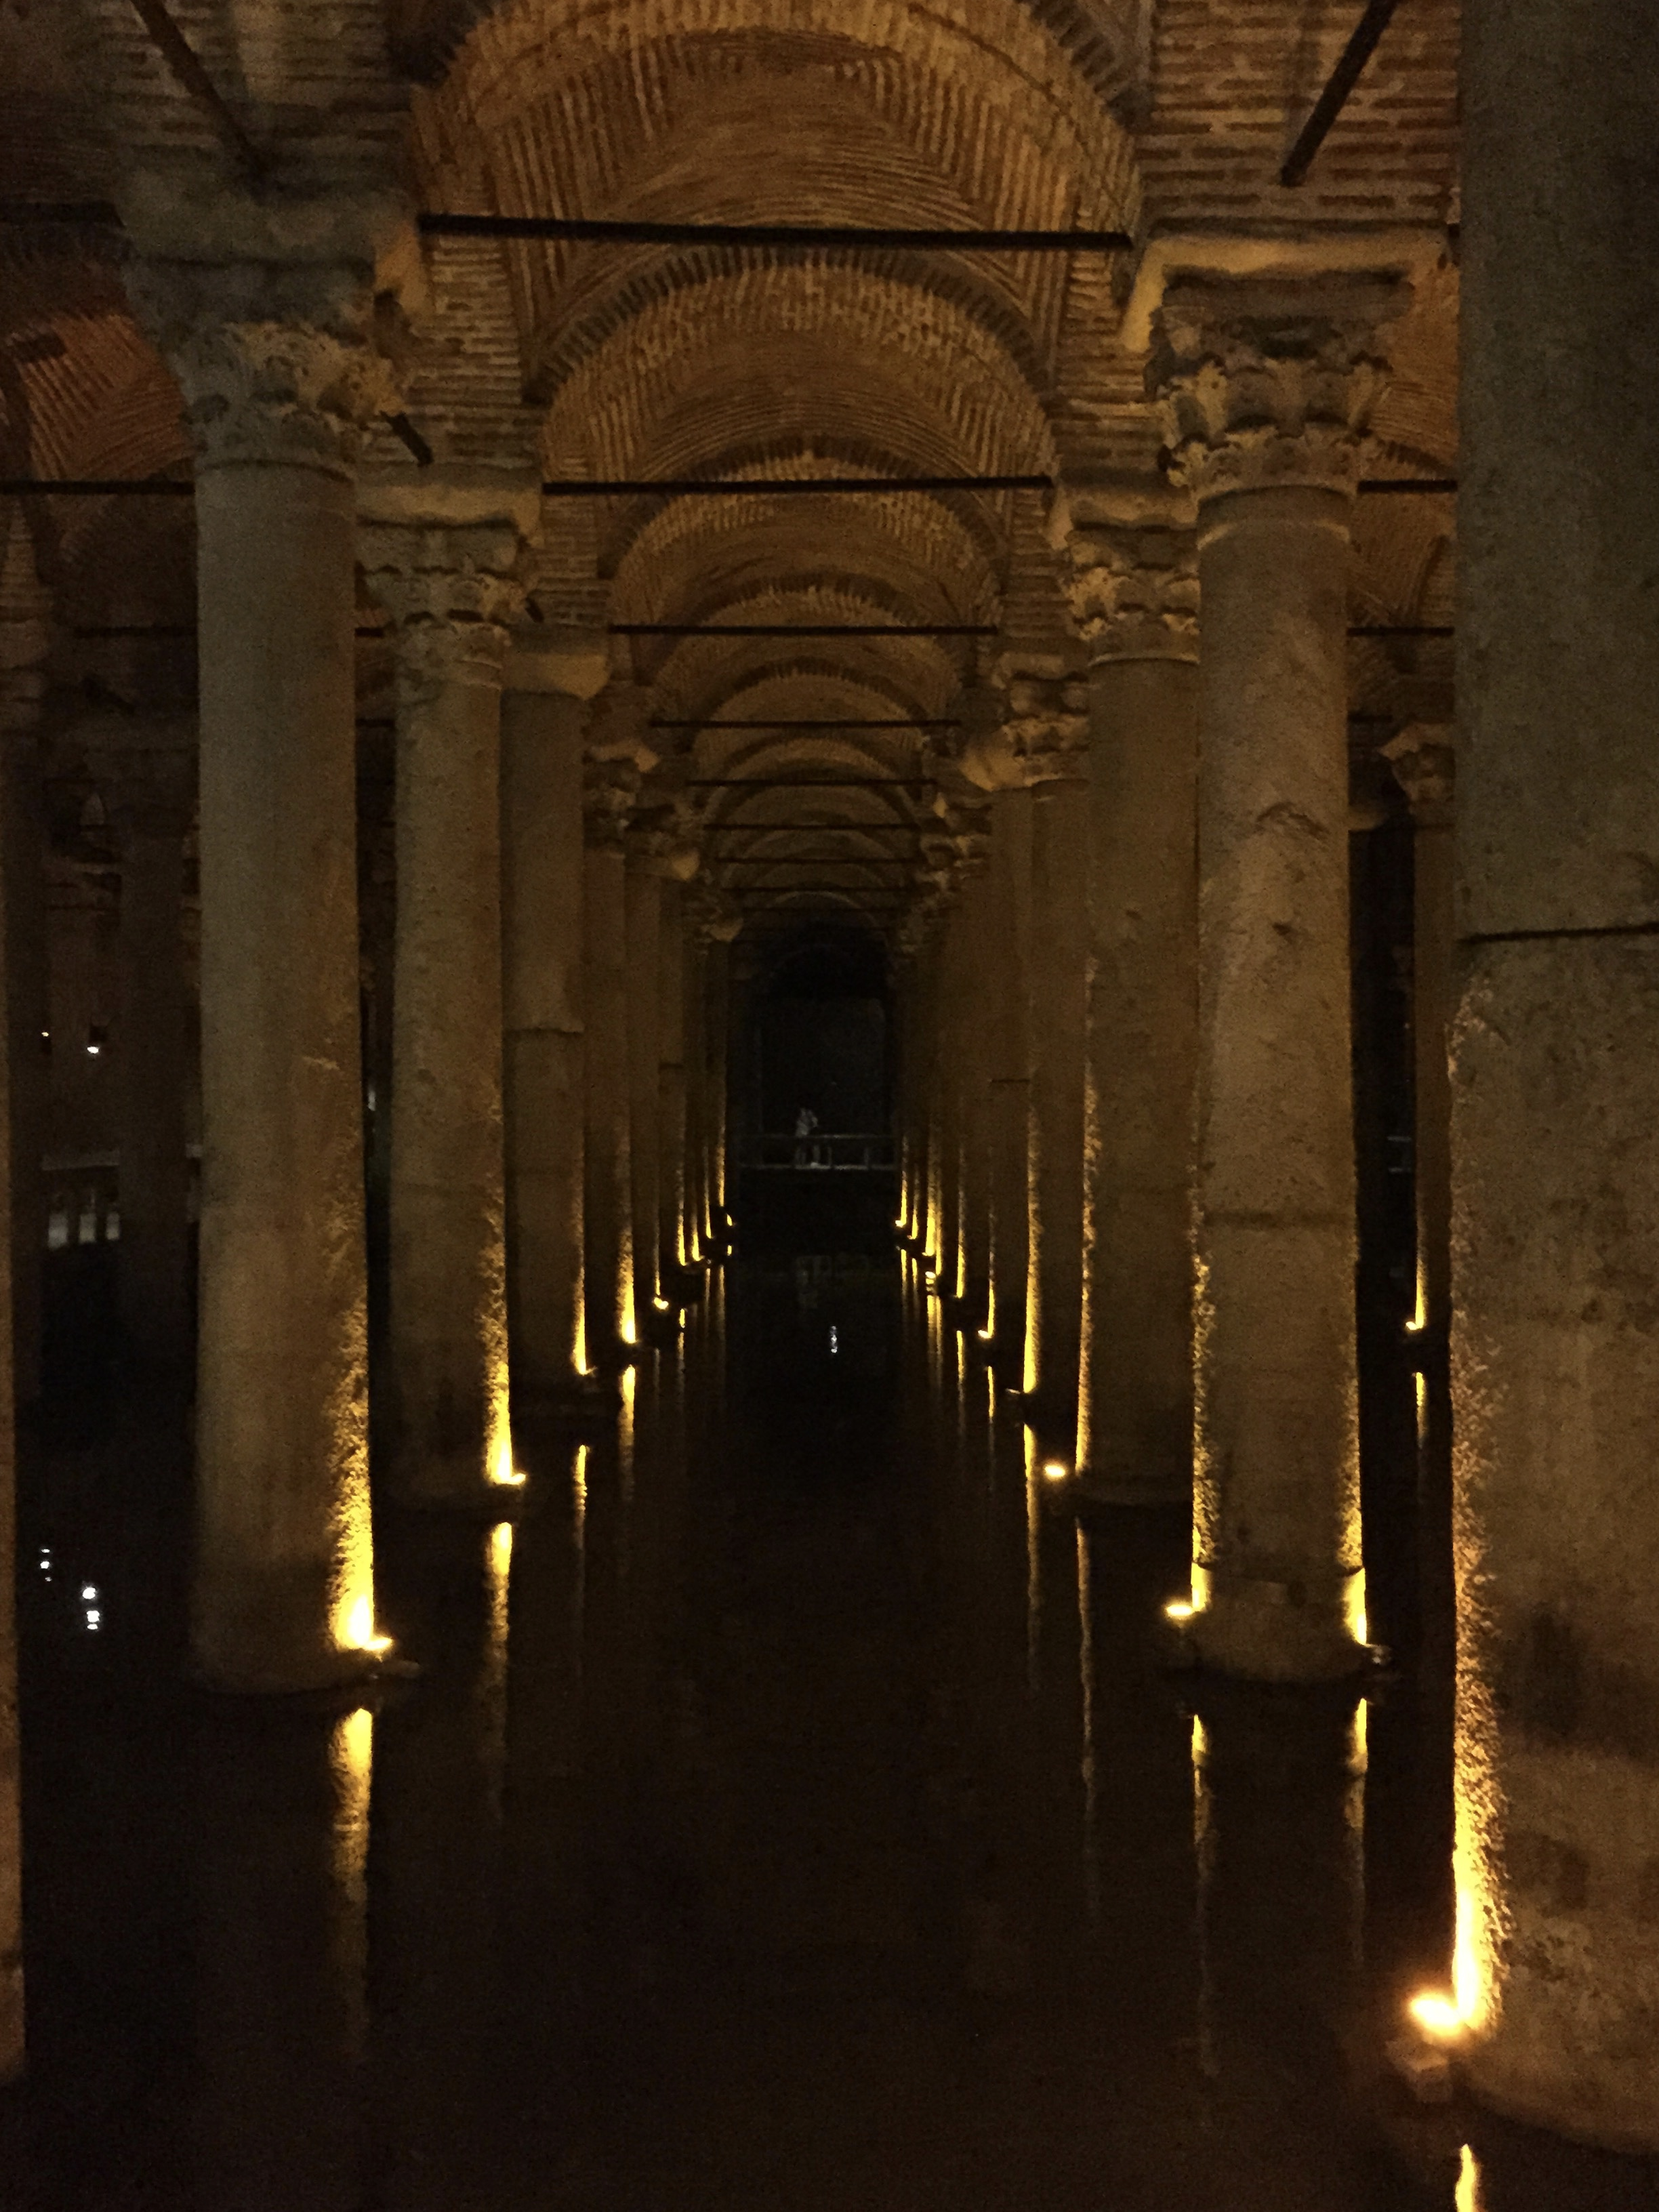 Image of Basilica Cistern, Stop 3 on our Istanbul itinerary